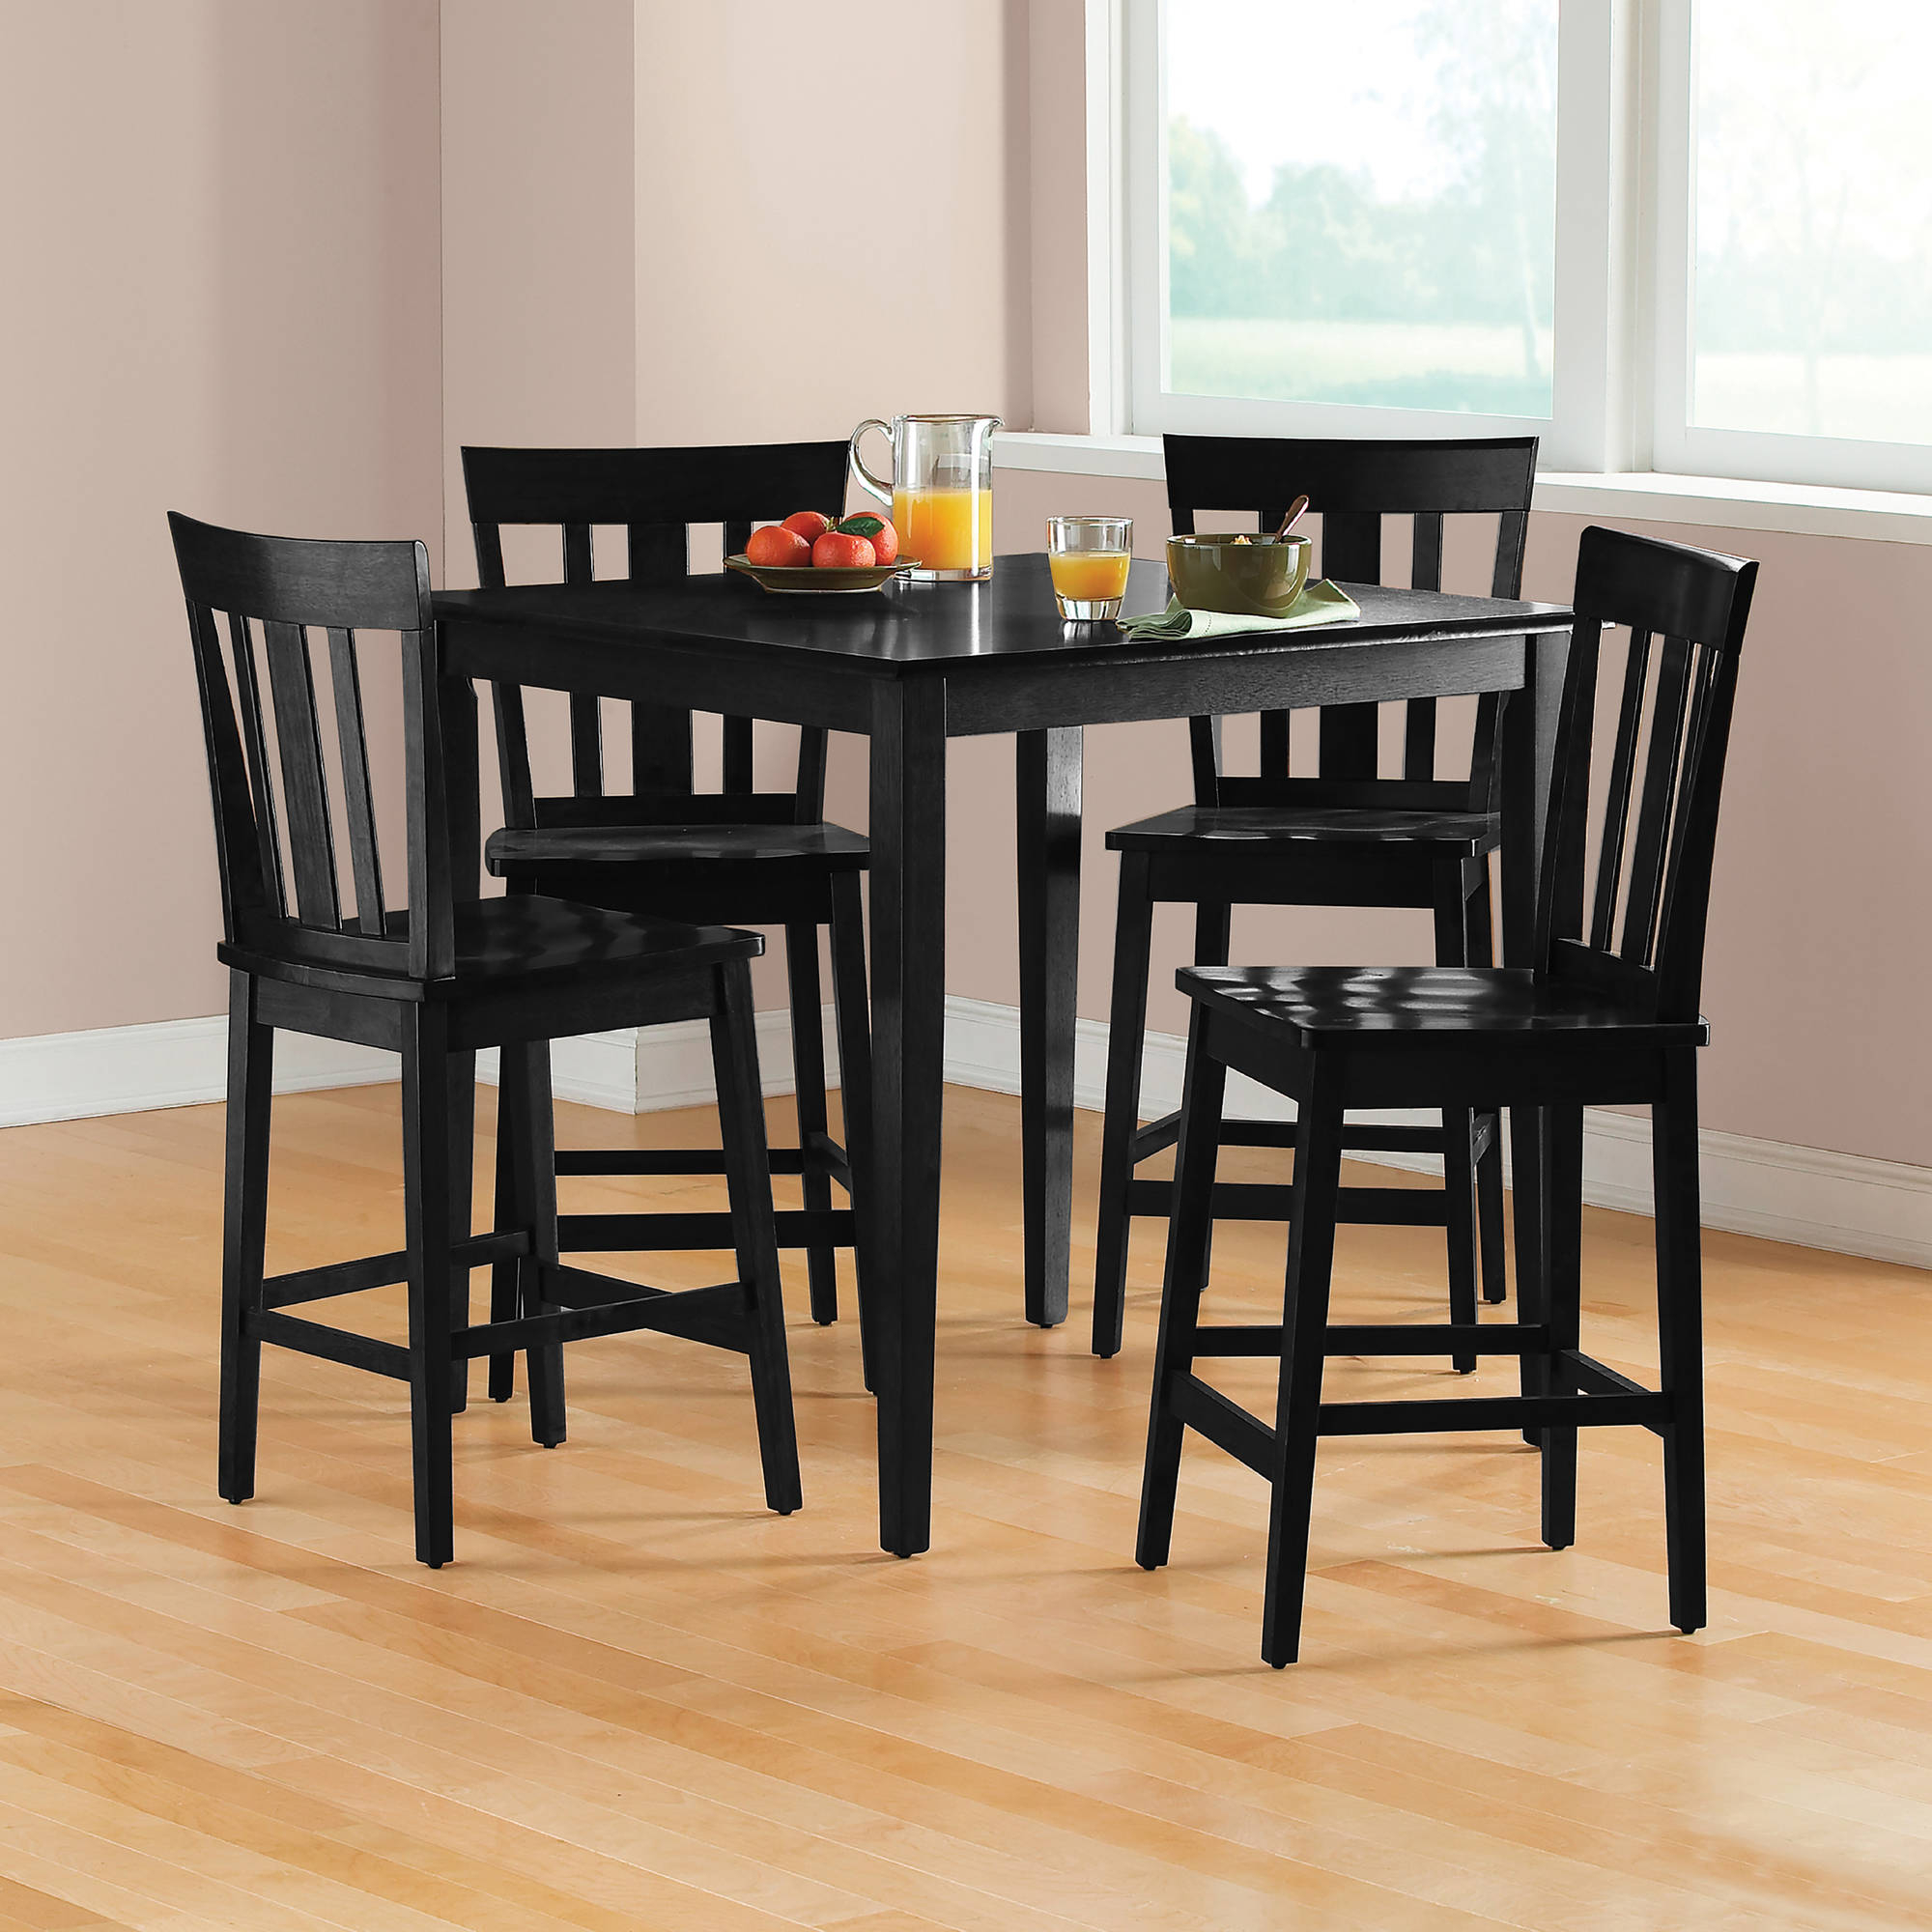 Trendy Target Marketing Systems 3 Piece Breakfast Nook Dining Set Inside Crownover 3 Piece Bar Table Sets (View 19 of 20)